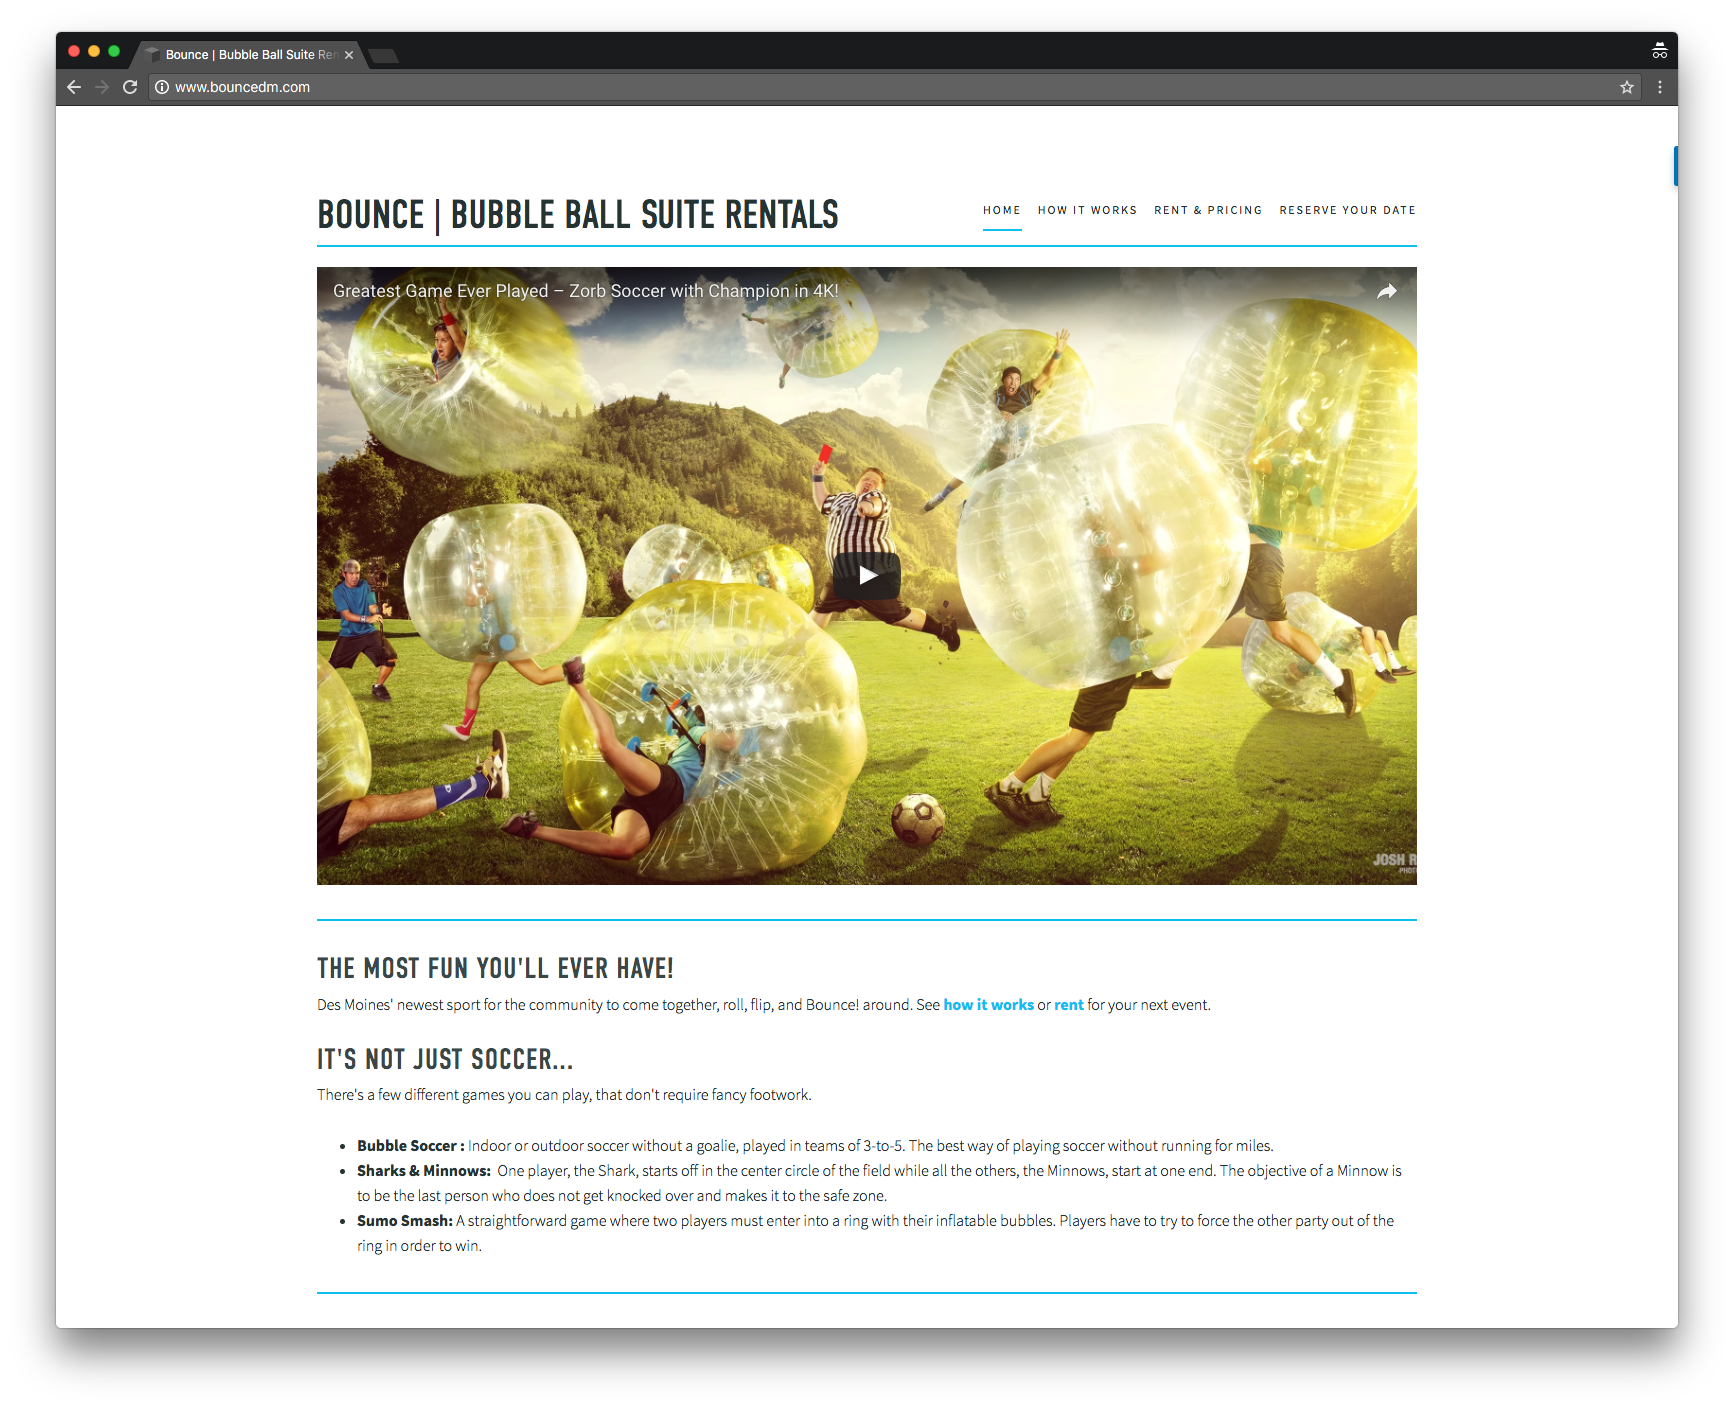 Bounce | Bubble Ball Suits